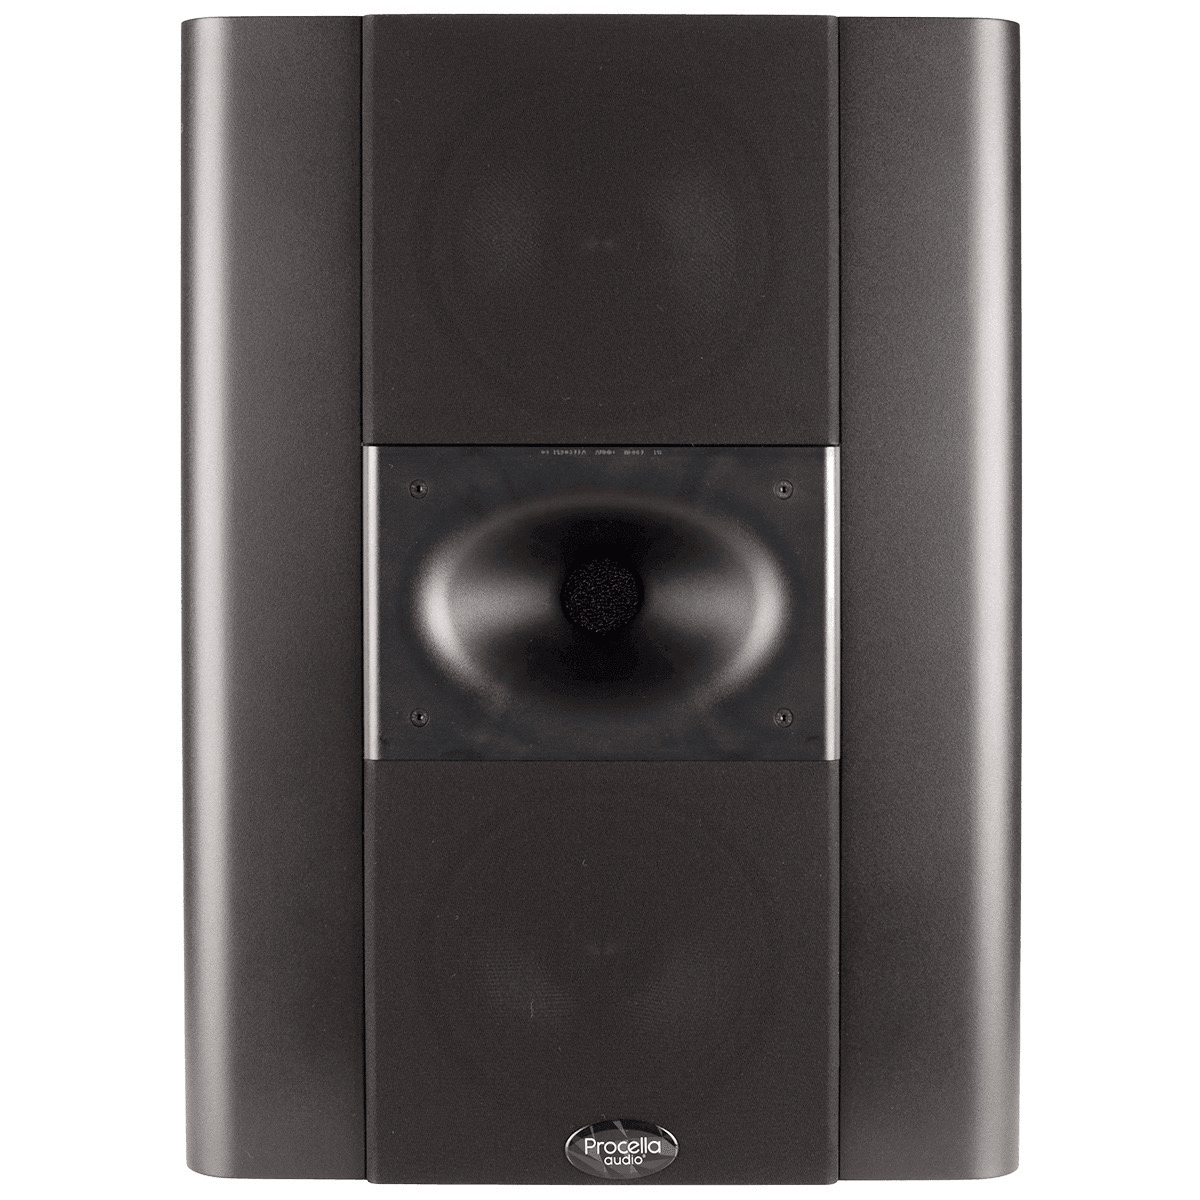 Procella P28 front view with cover 1200×1200